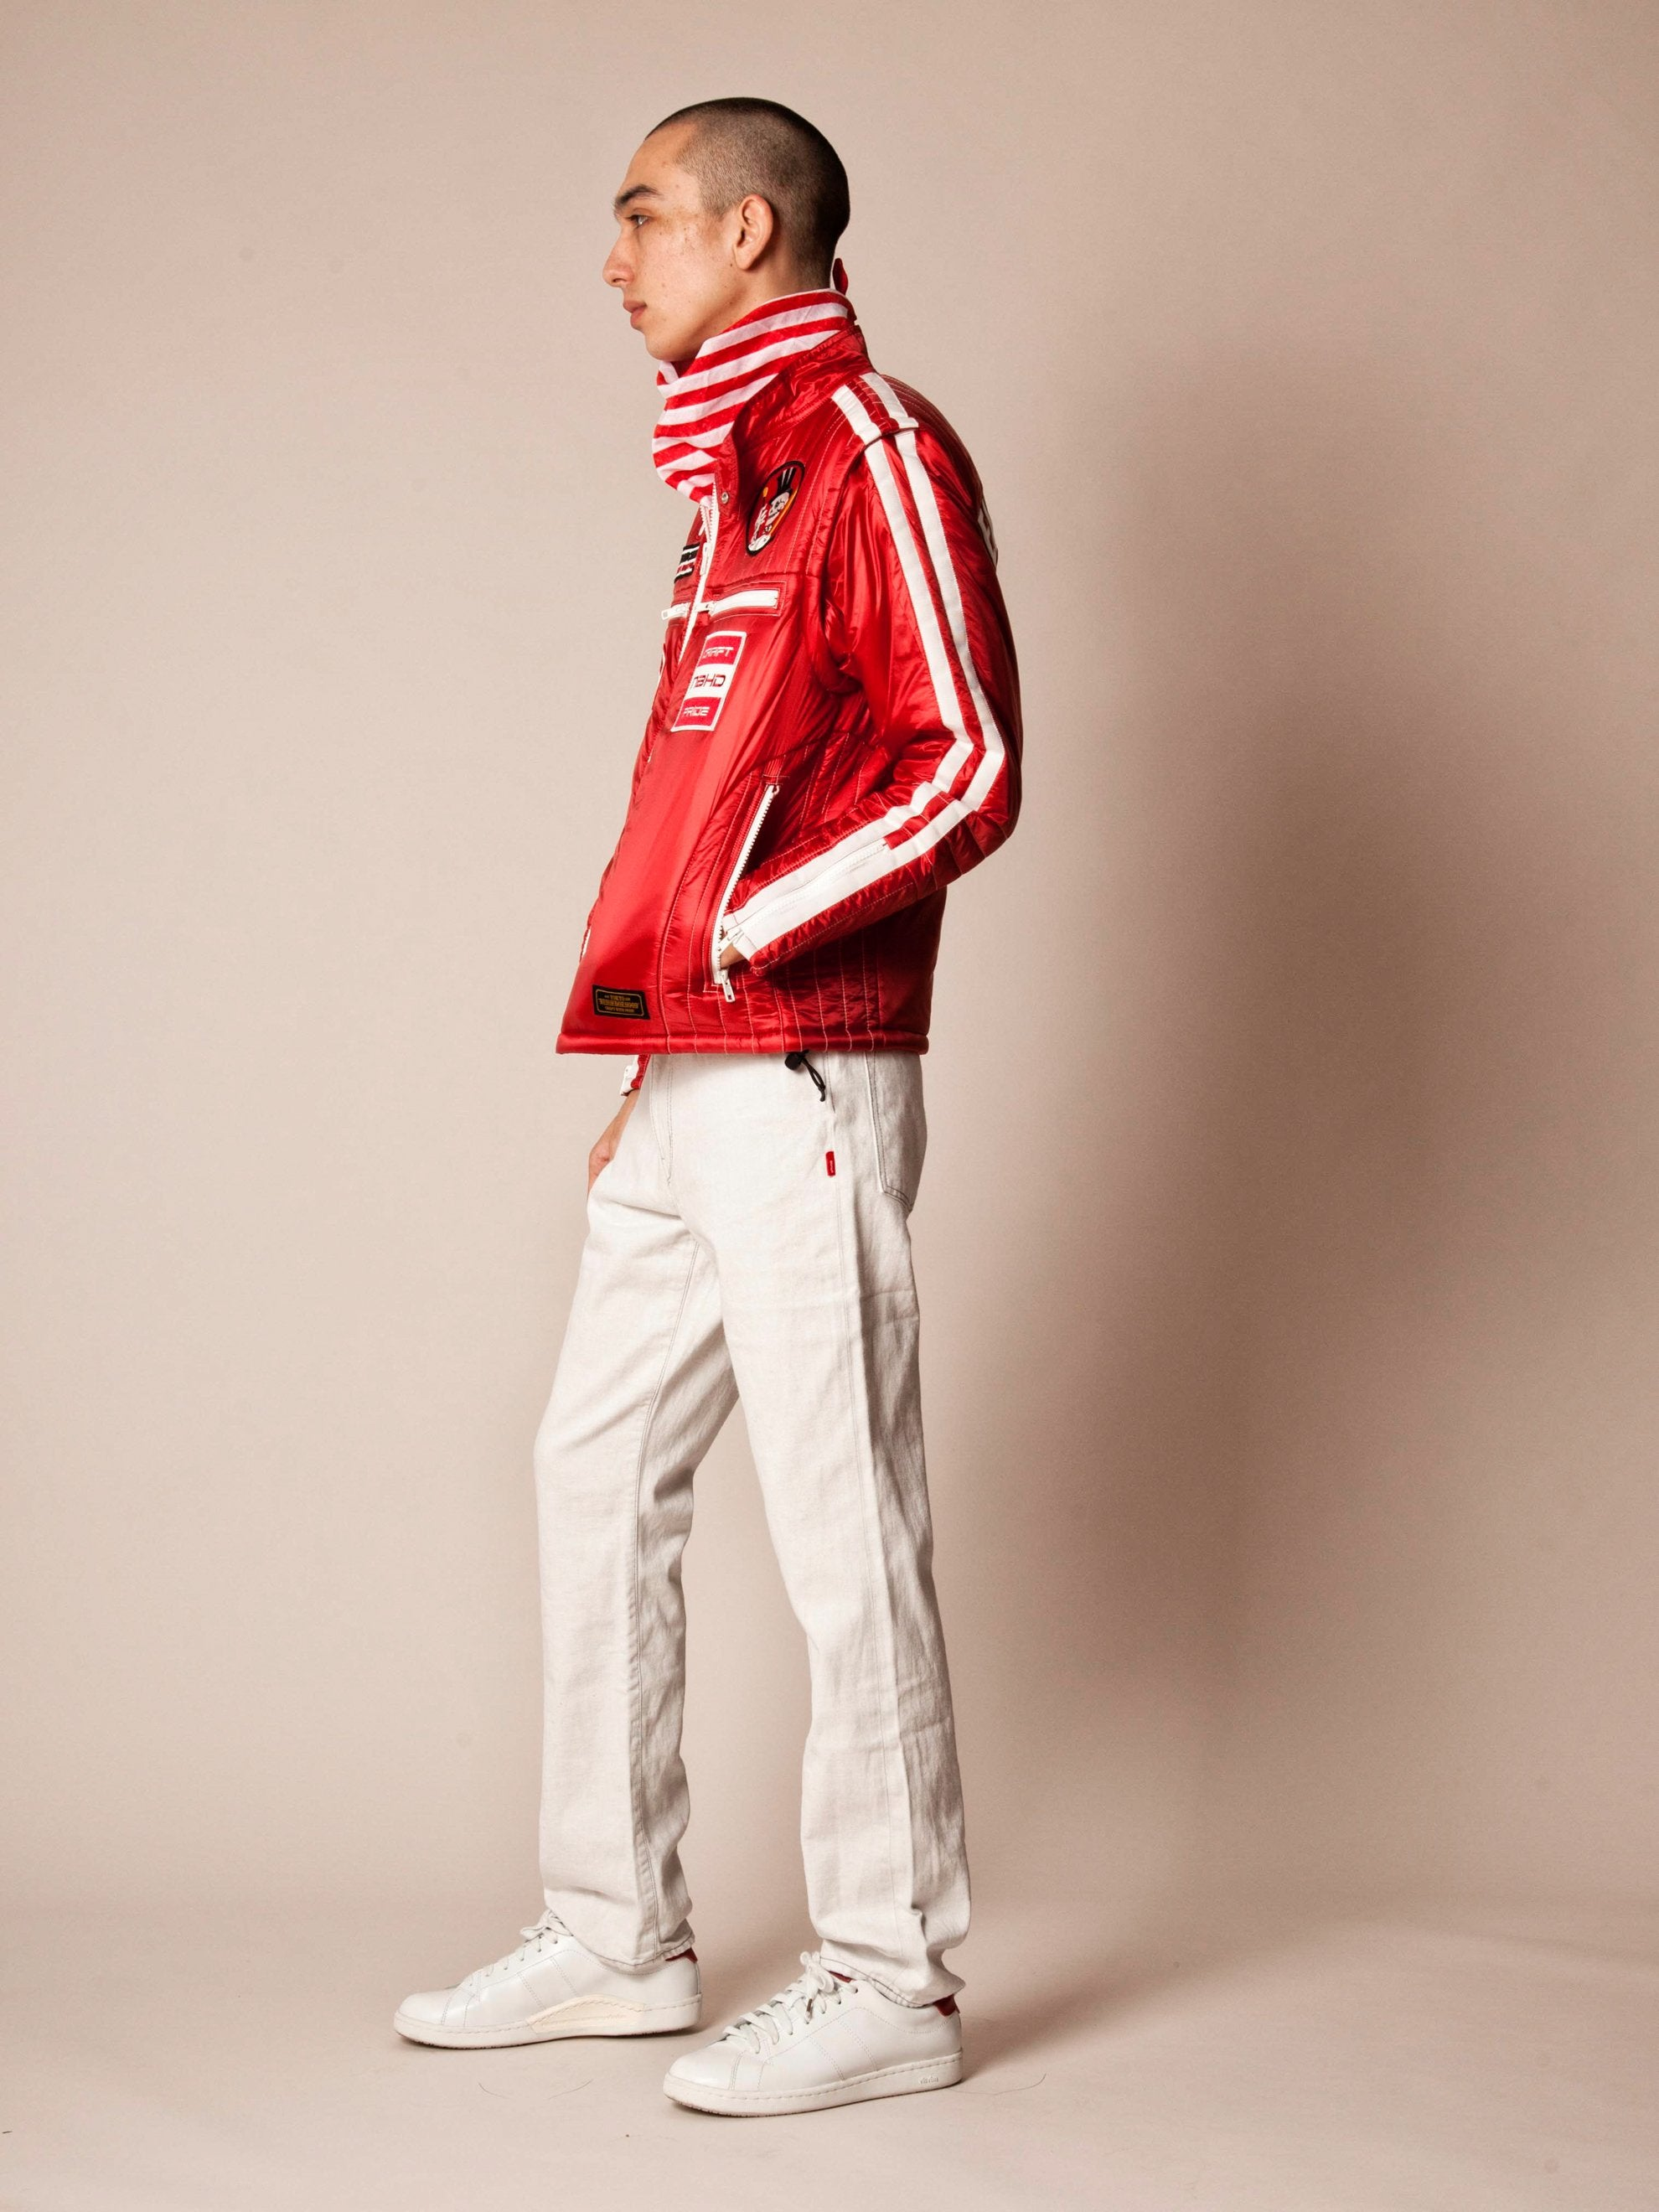 Red Racing Jacket 4